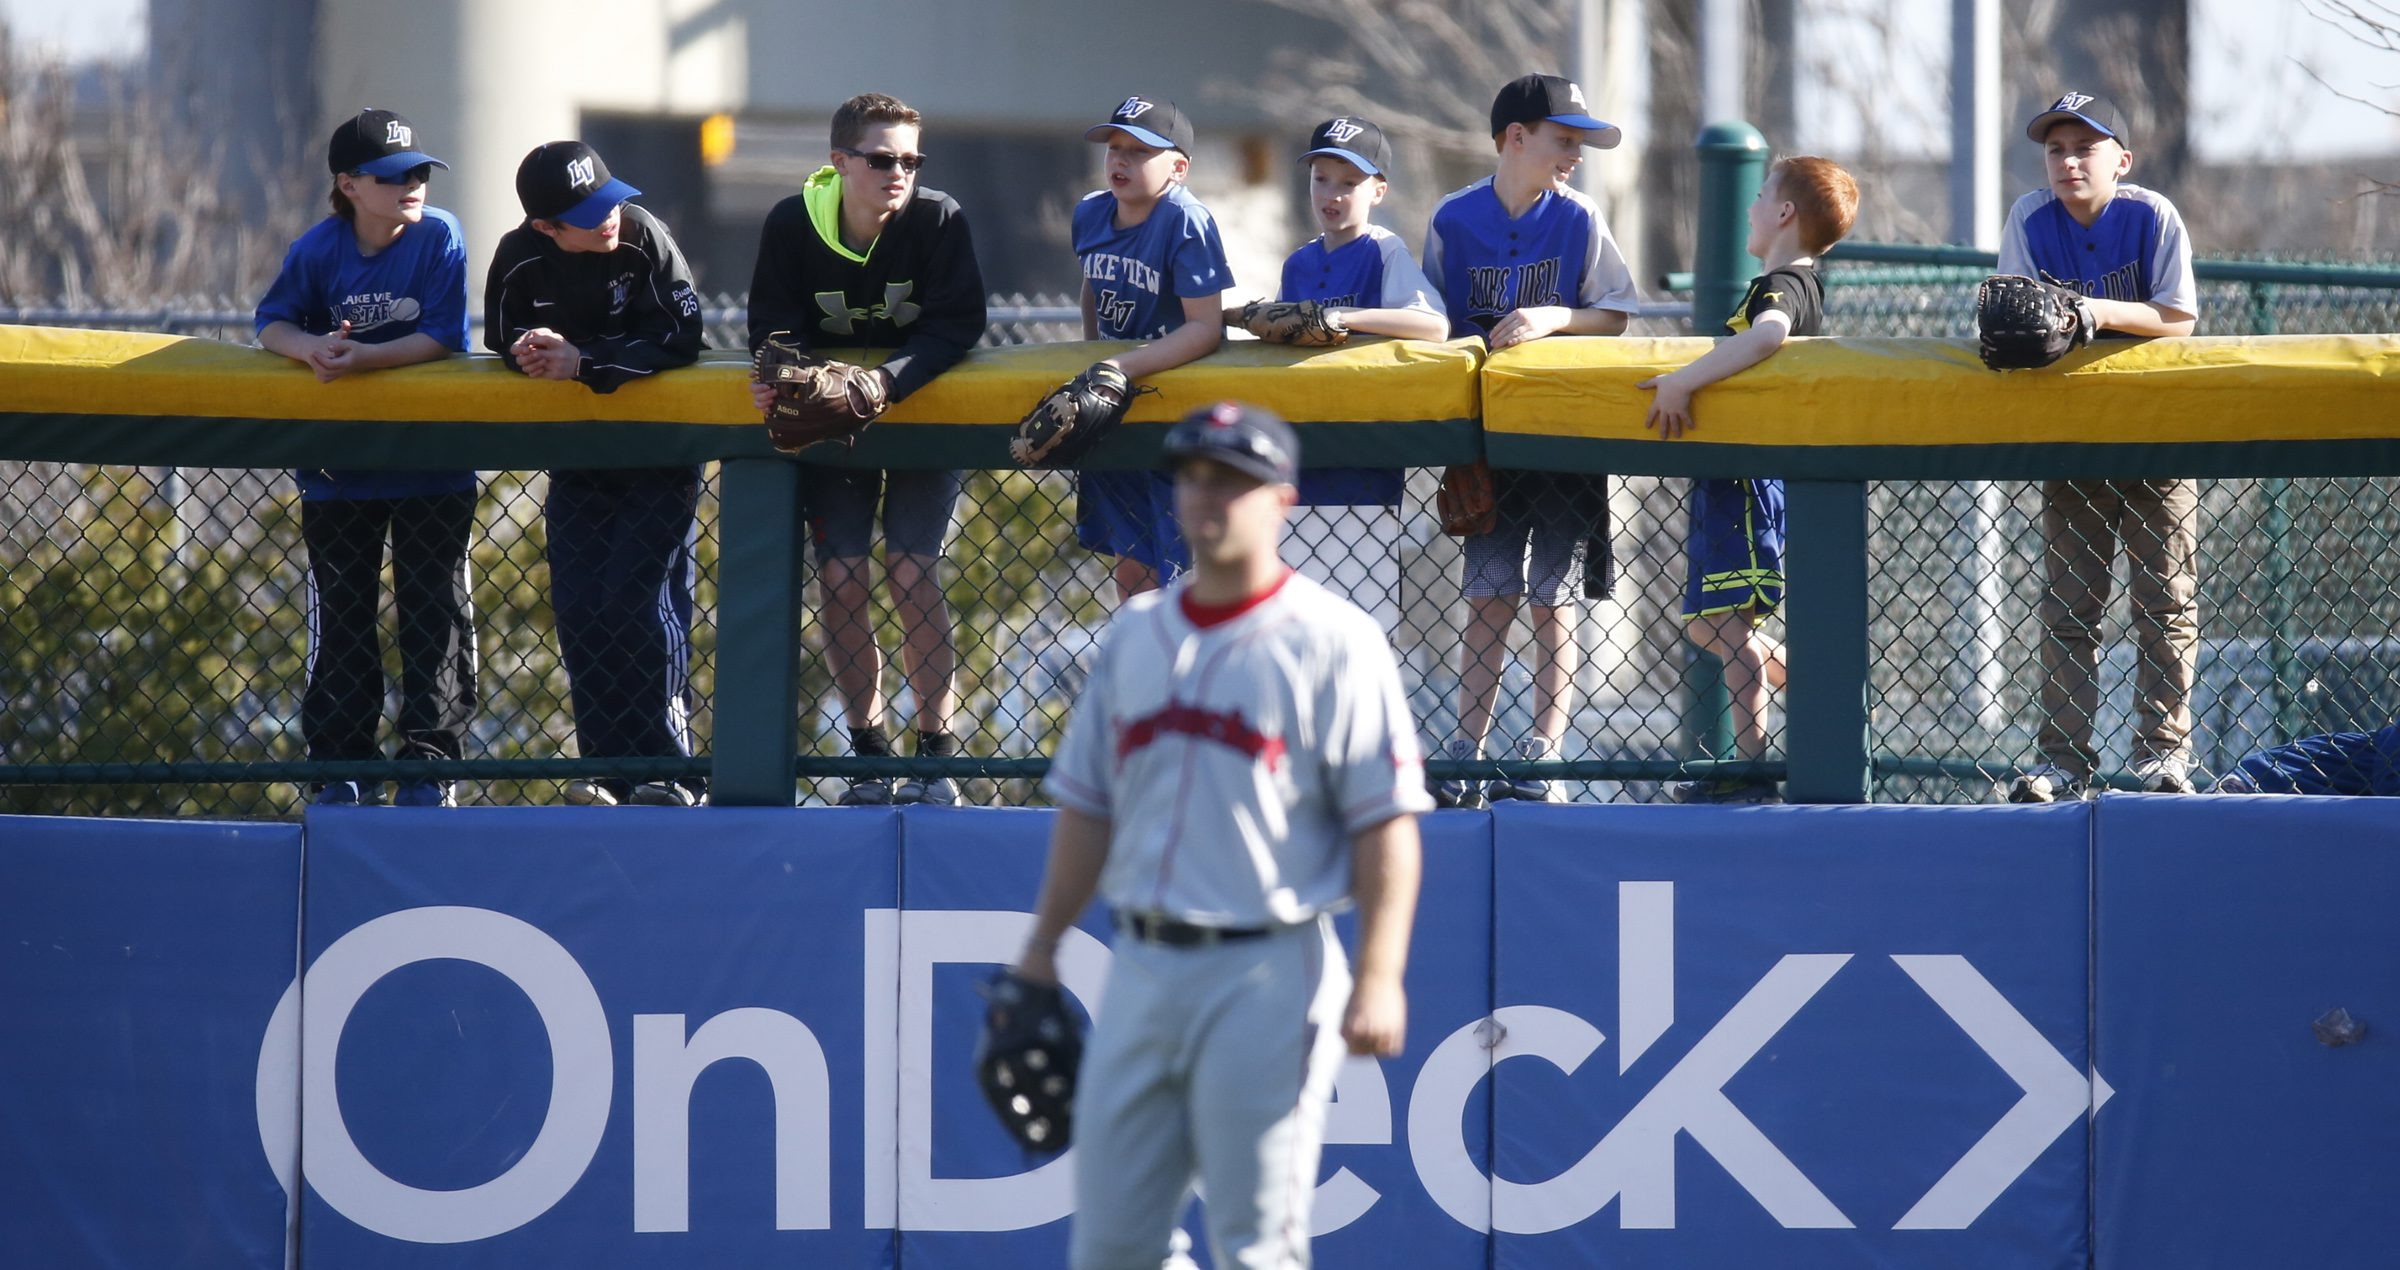 Buffalo Bisons fans hang over the right field fence to watch action against the Pawtucket Red Sox earlier this season. (Harry Scull Jr./Buffalo News)